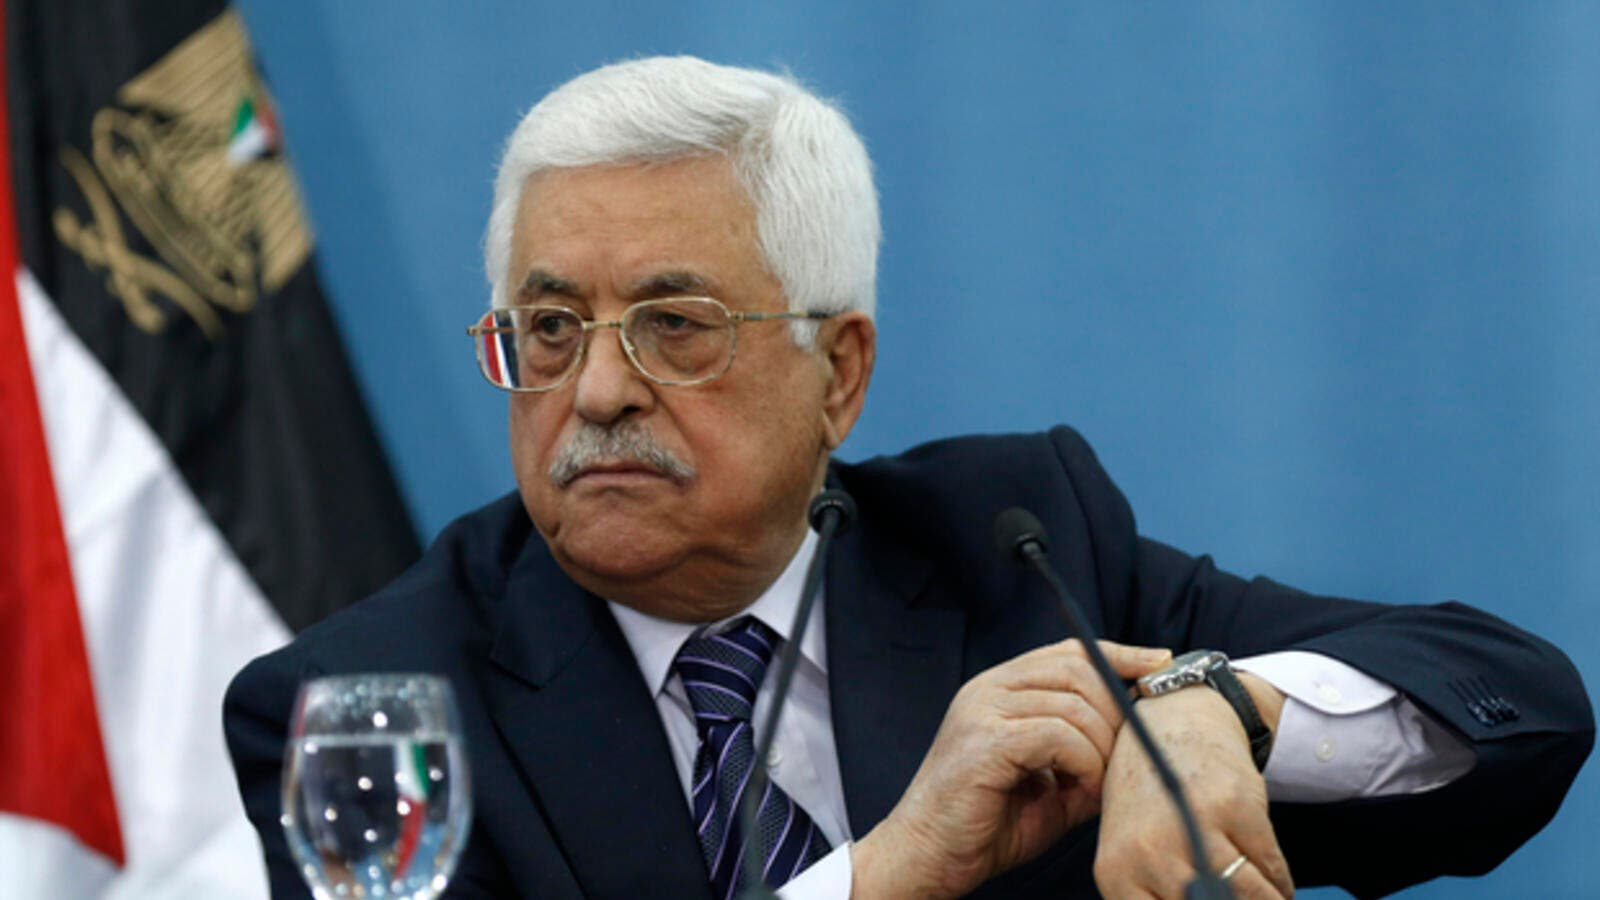 Palestinian Authority President Mahmoud Abbas gestures at his watch. (AFP/File photo)